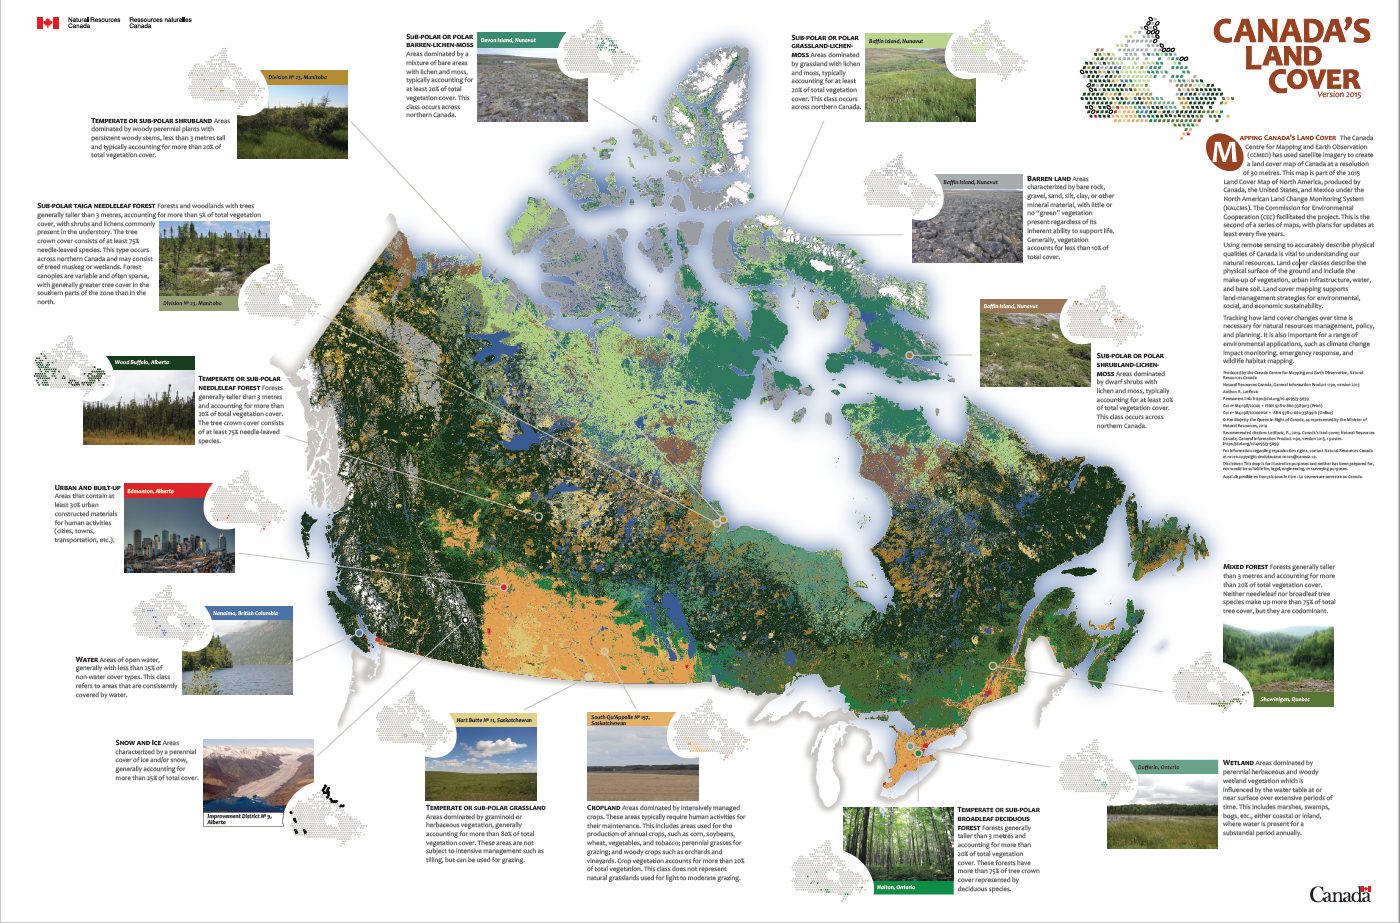 Canada's land cover